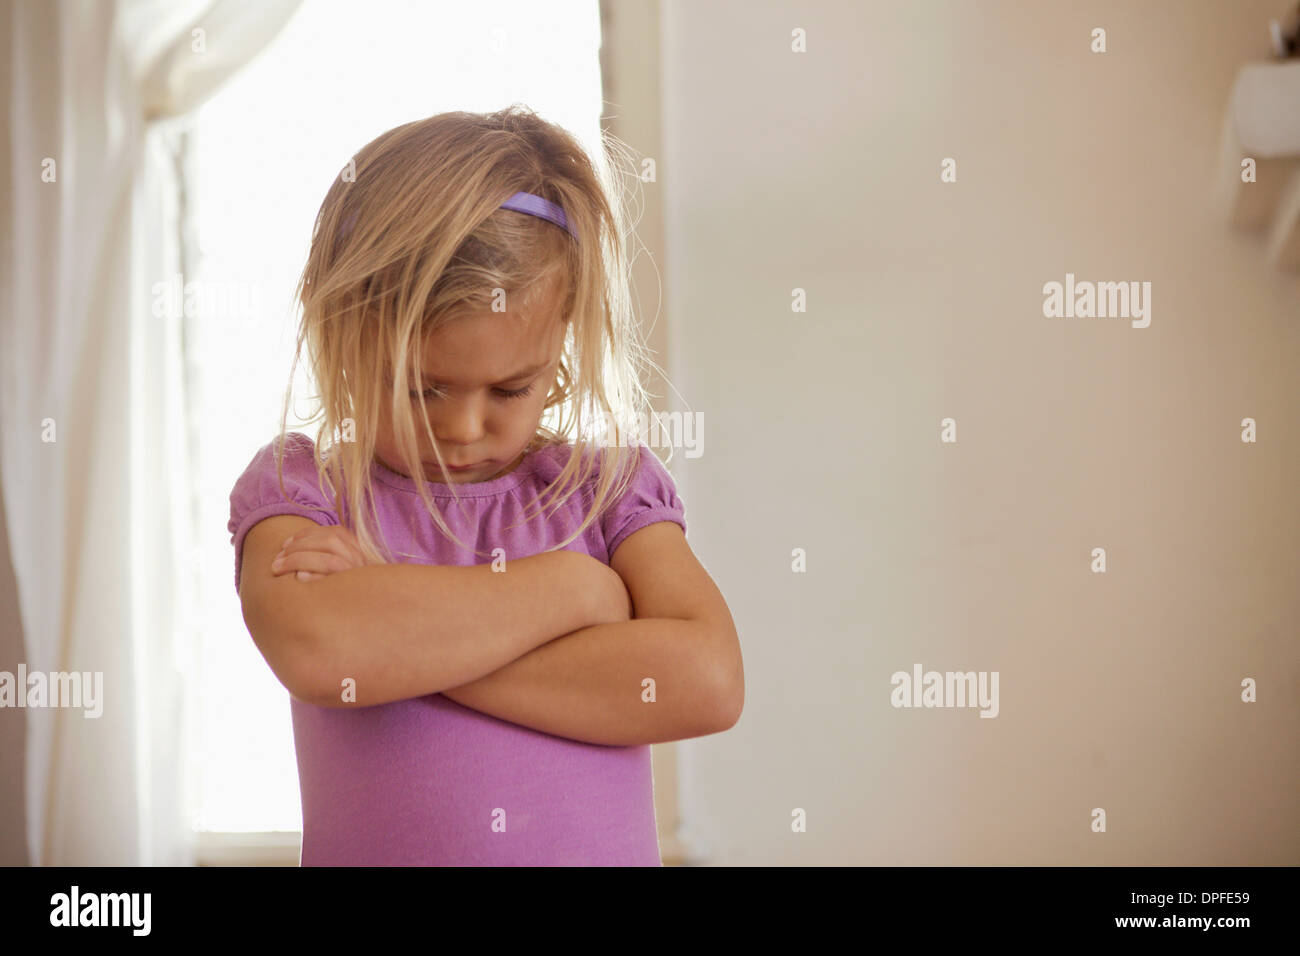 Young girl with head down and arms folded having tantrum - Stock Image